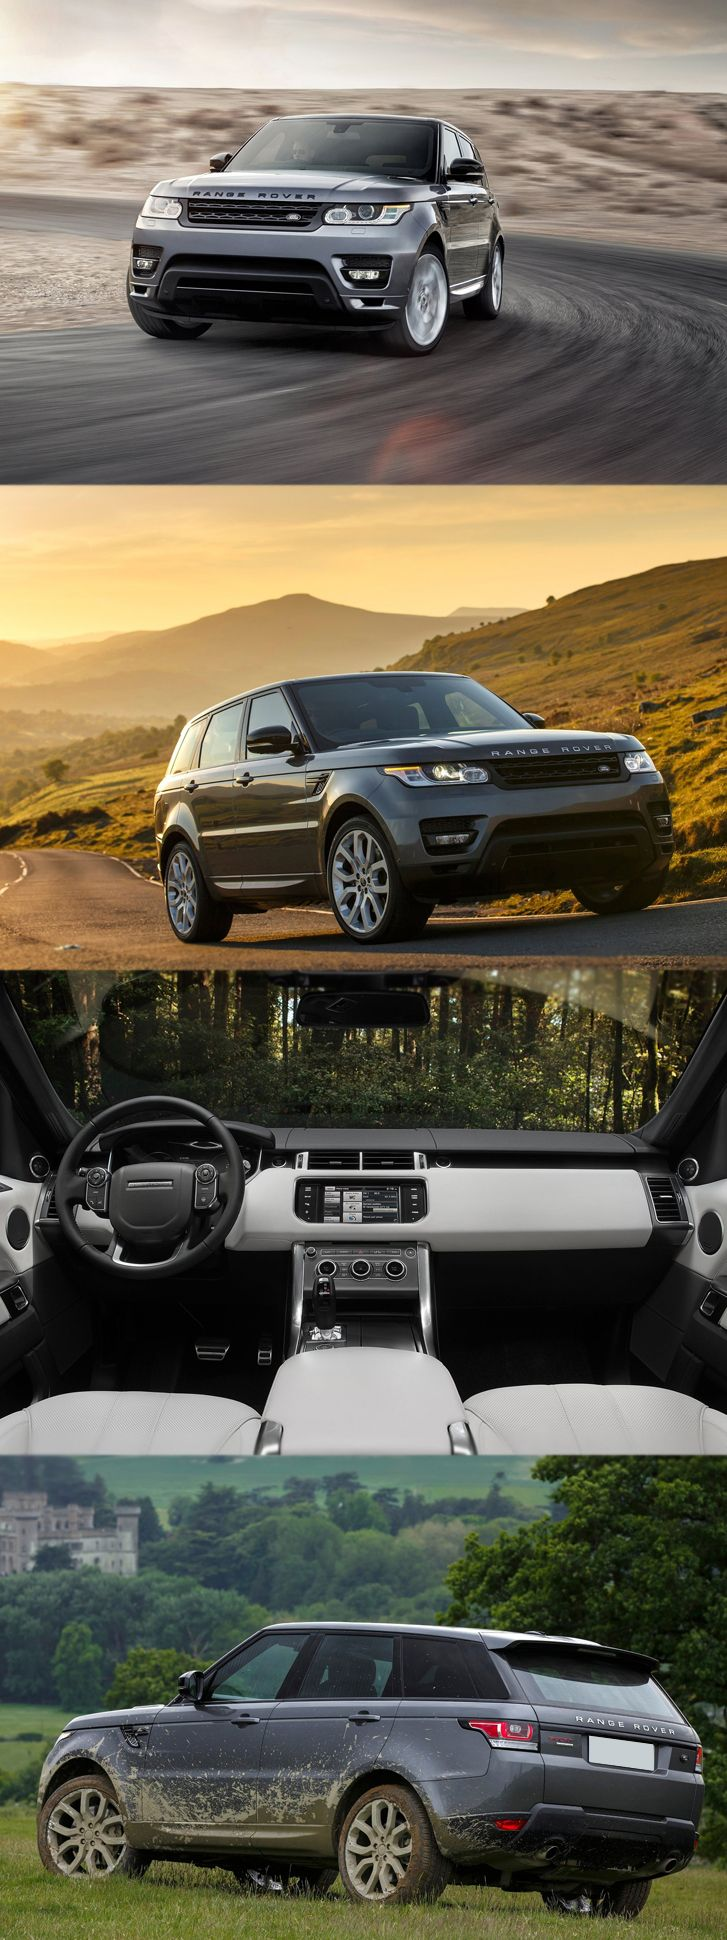 Range Rover Sport Gearbox Review For more detail please visit:https://www.reconautogearbox.co.uk/blog/range-rover-sport-gearbox-review/